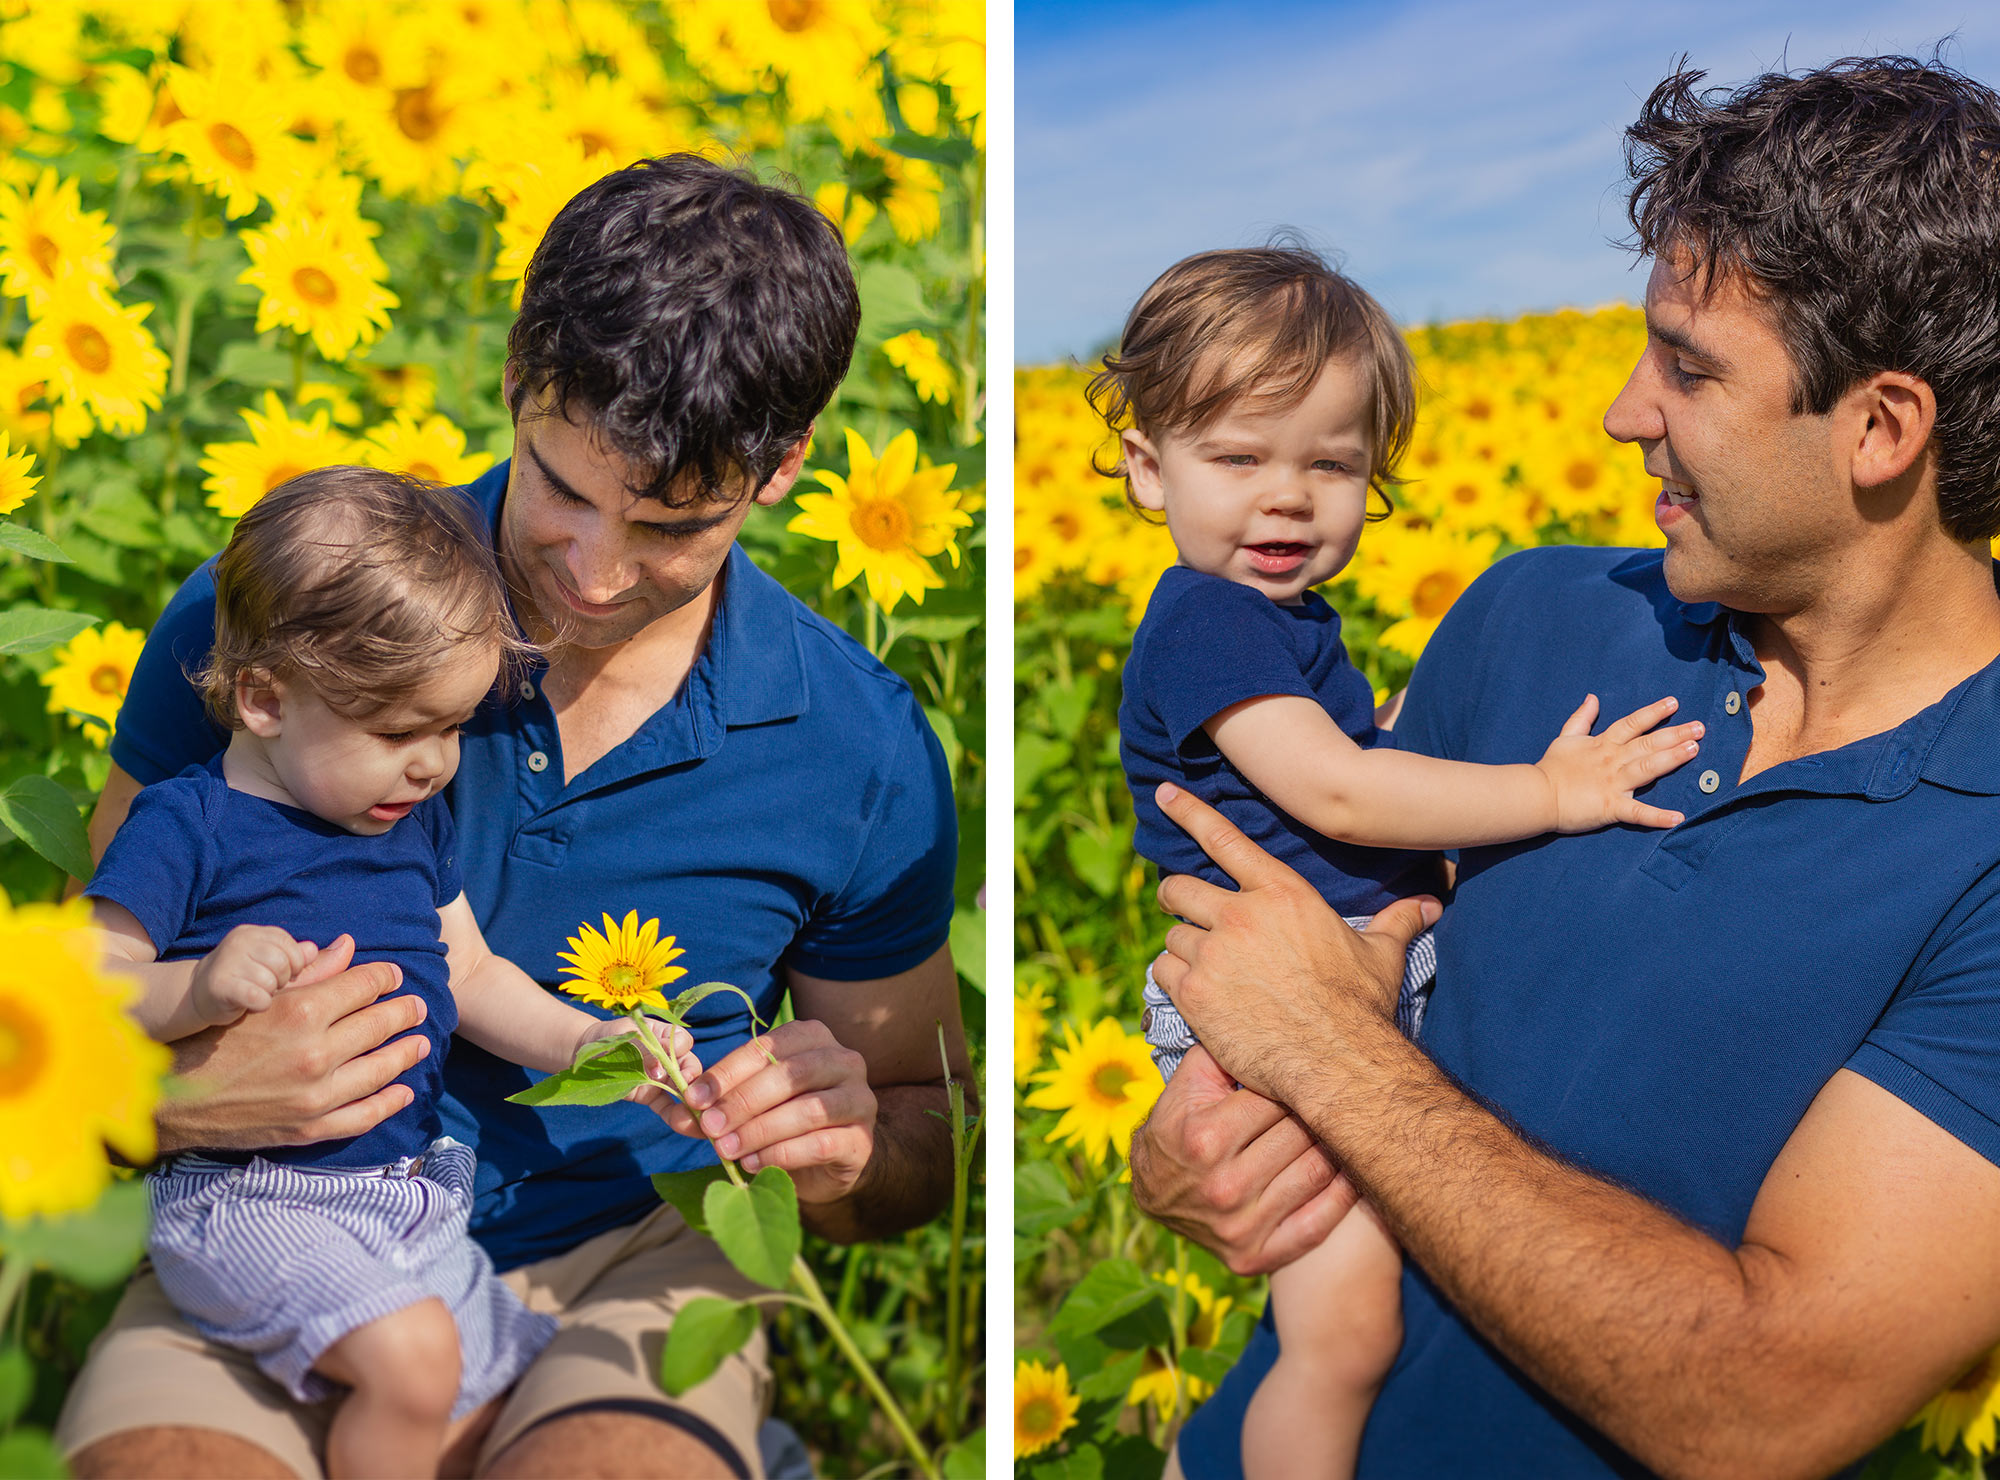 Andover Family Portrait Photographer | Stephen Grant Photography